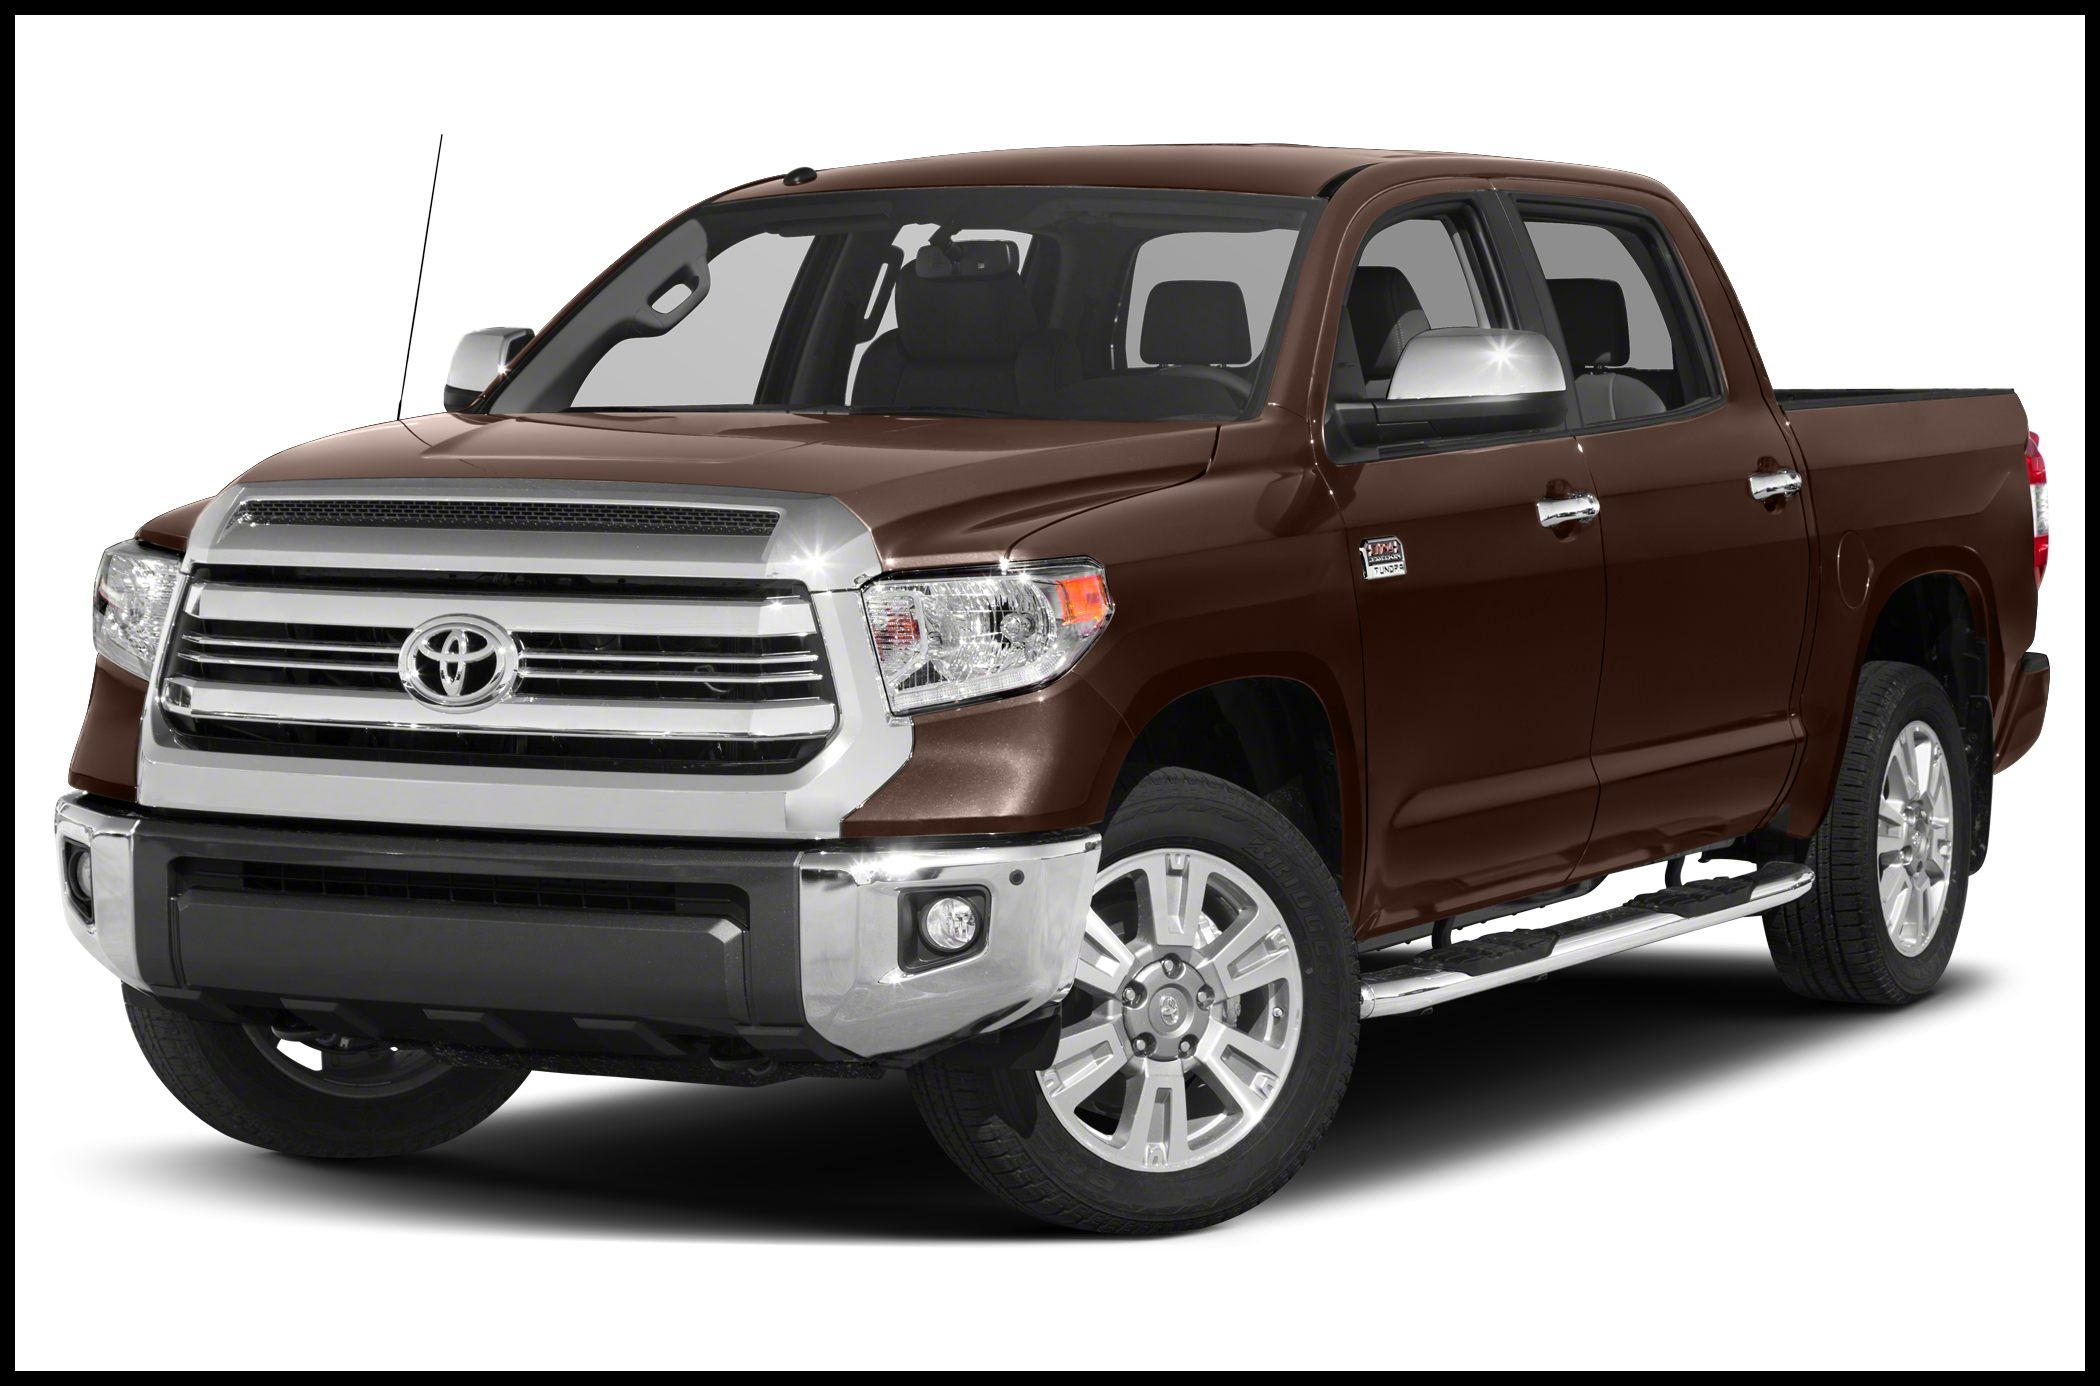 2017 Toyota Tundra 1794 5 7L V8 4x2 CrewMax 5 6 ft box 145 7 in WB Specs and Prices